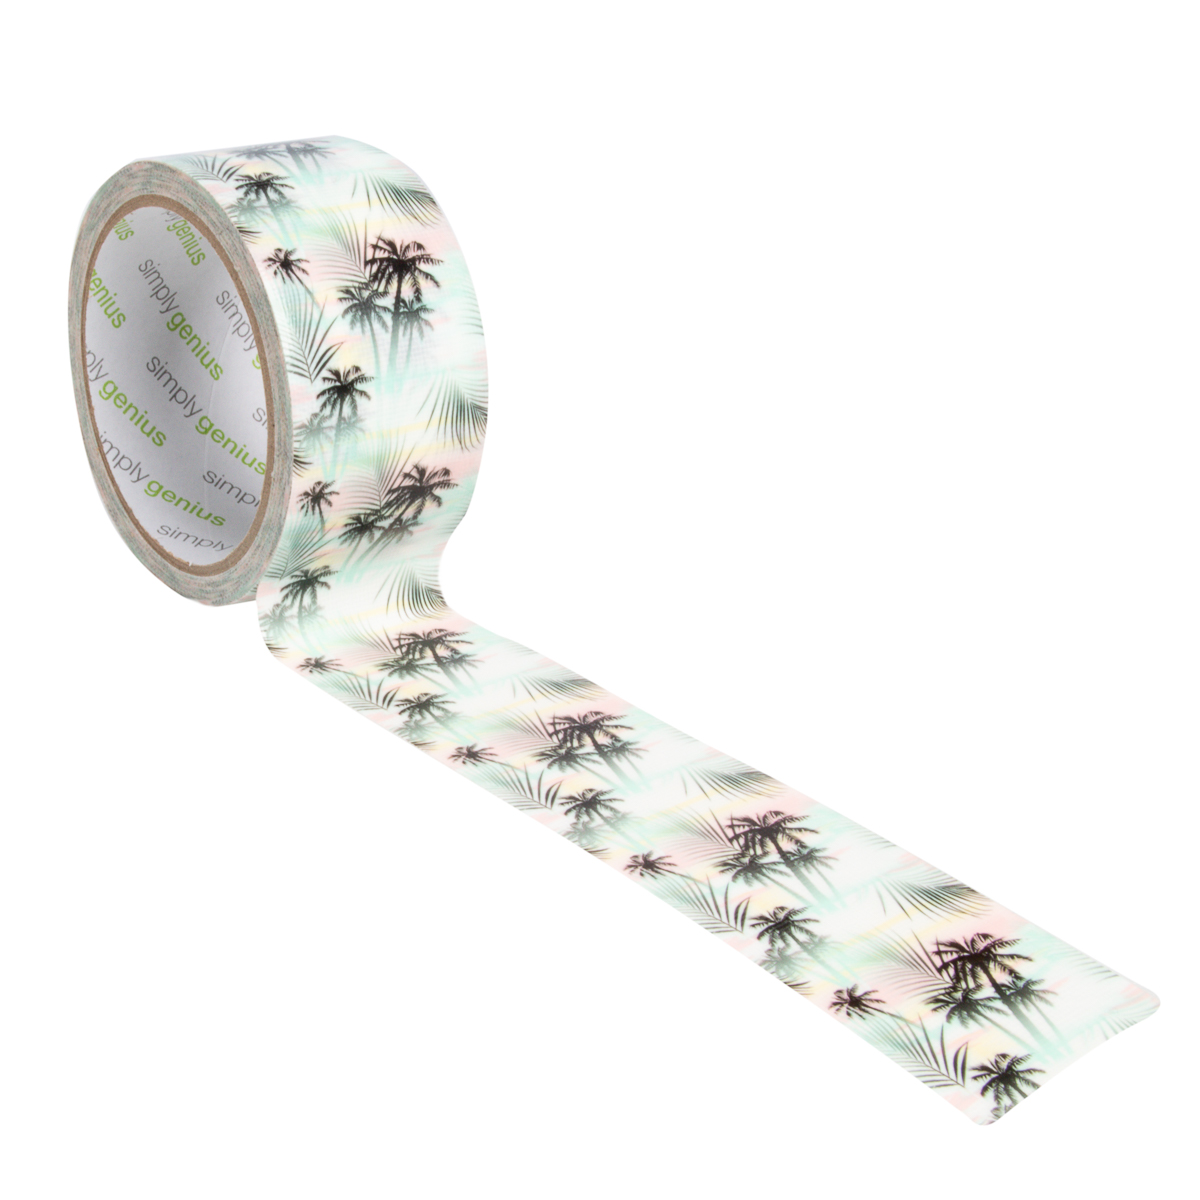 Simply-Genius-Duct-Tape-Roll-Colors-Patterns-Craft-Supplies-Colored-amp-Patterned thumbnail 215